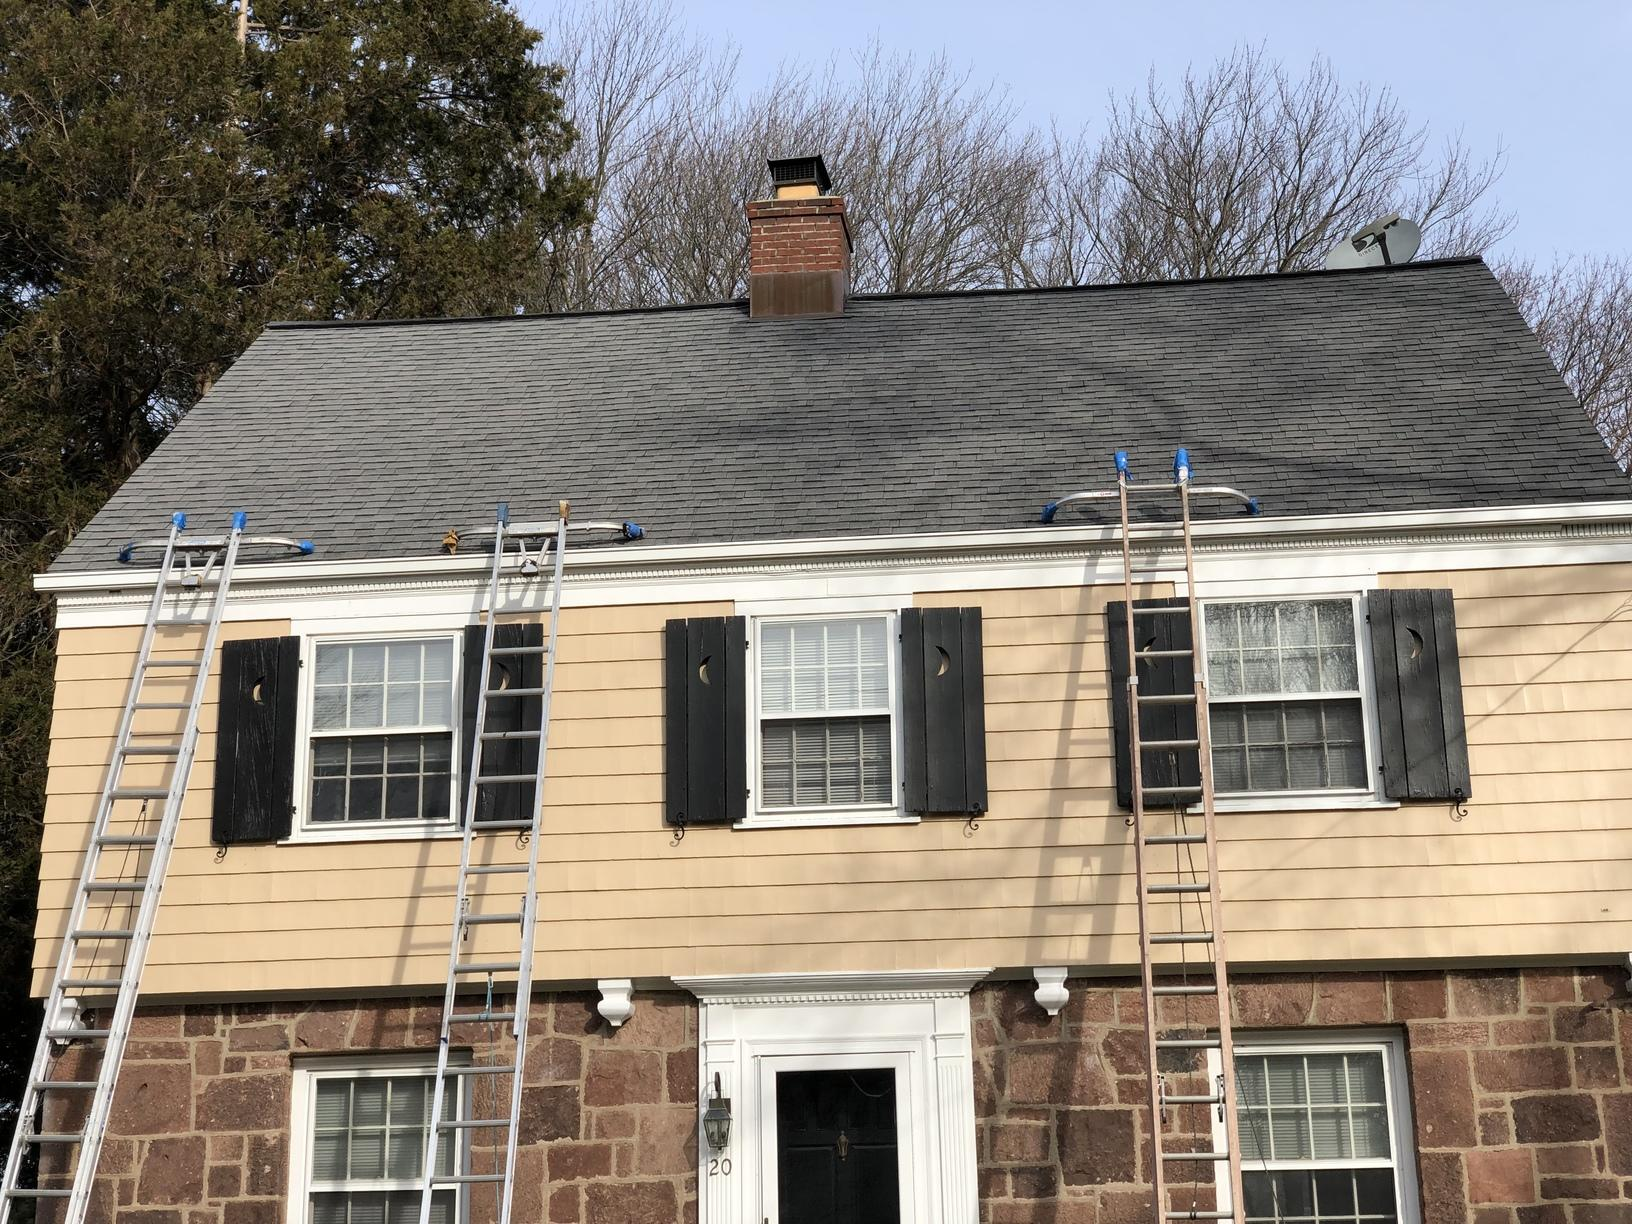 Gutter installation in north haven before image